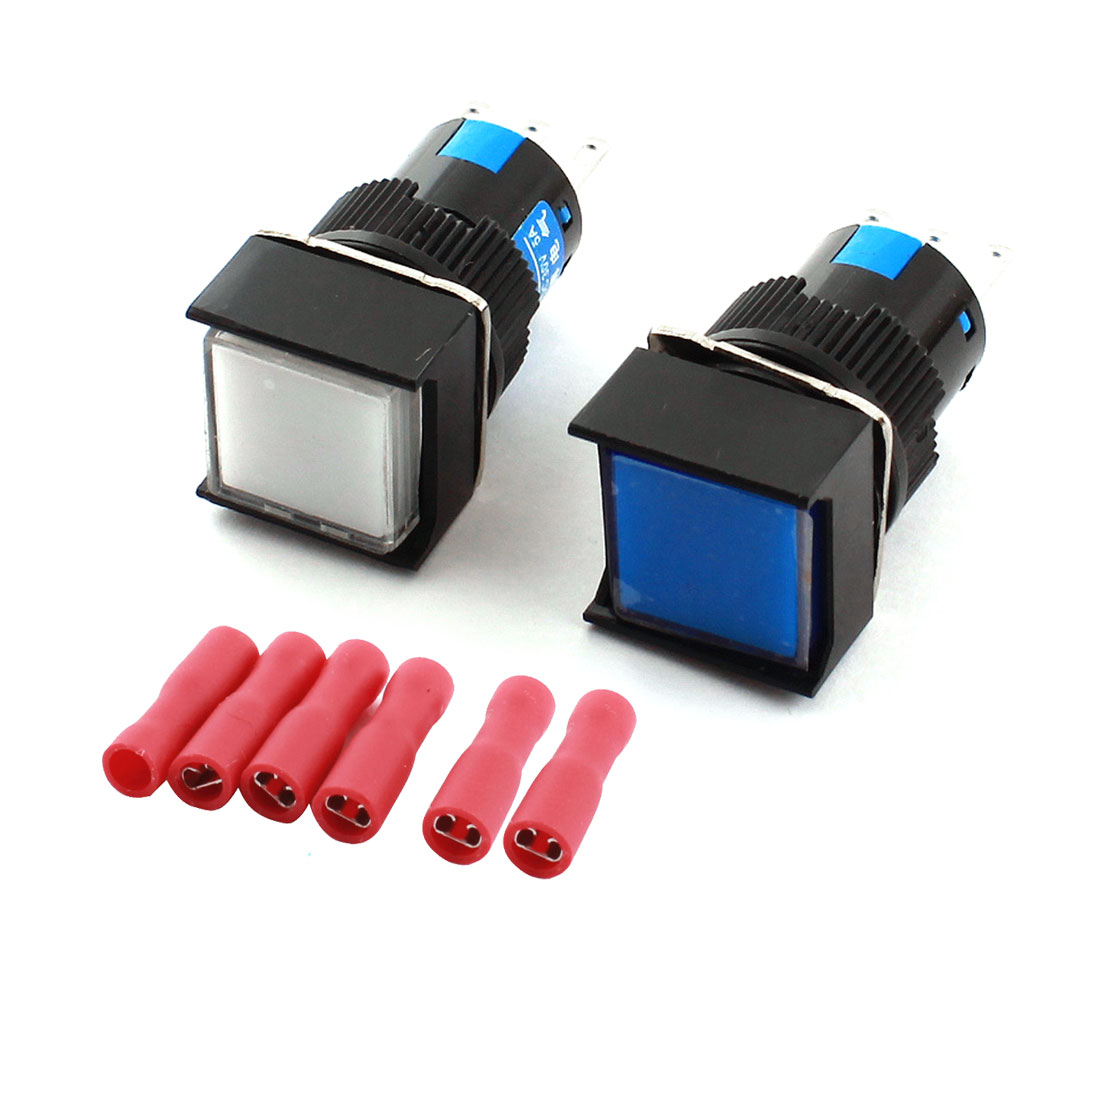 2pcs White Blue Button 3Pins 16mm Thread Panel Mounted SPDT Latching Square Pushbutton Switch + 6pcs Crimp Connectors